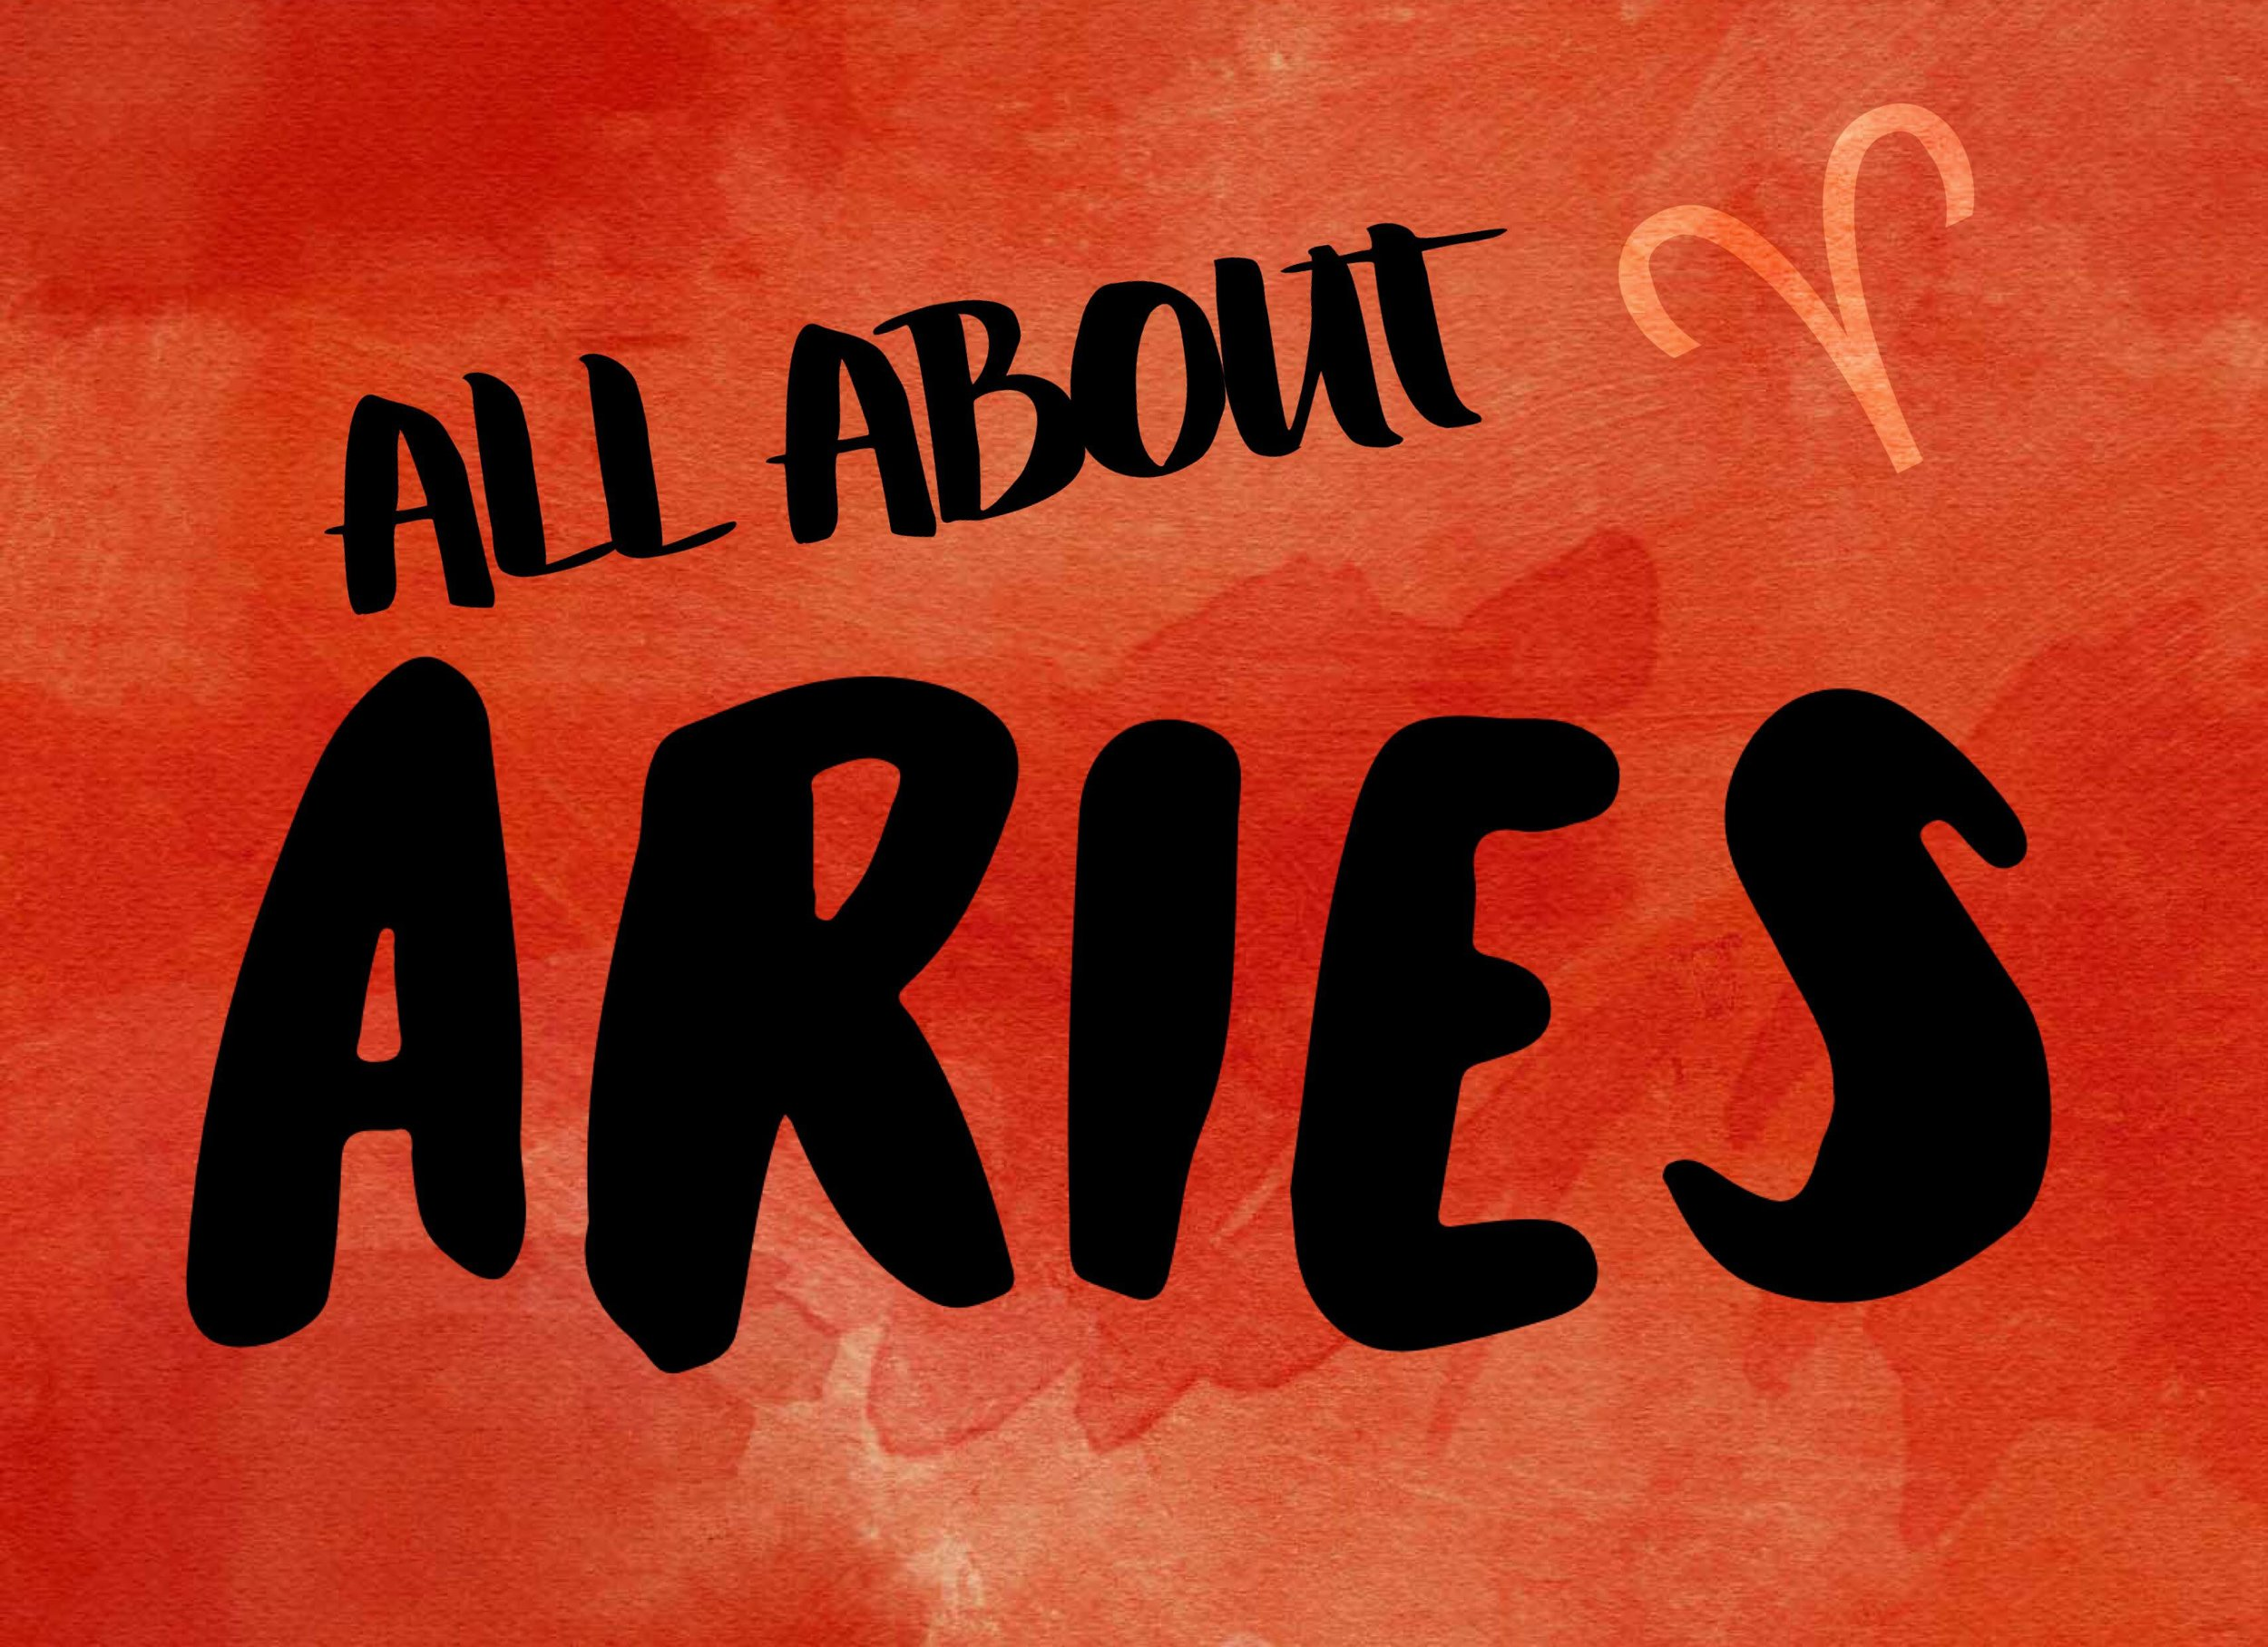 aries astrology about aries all about aries